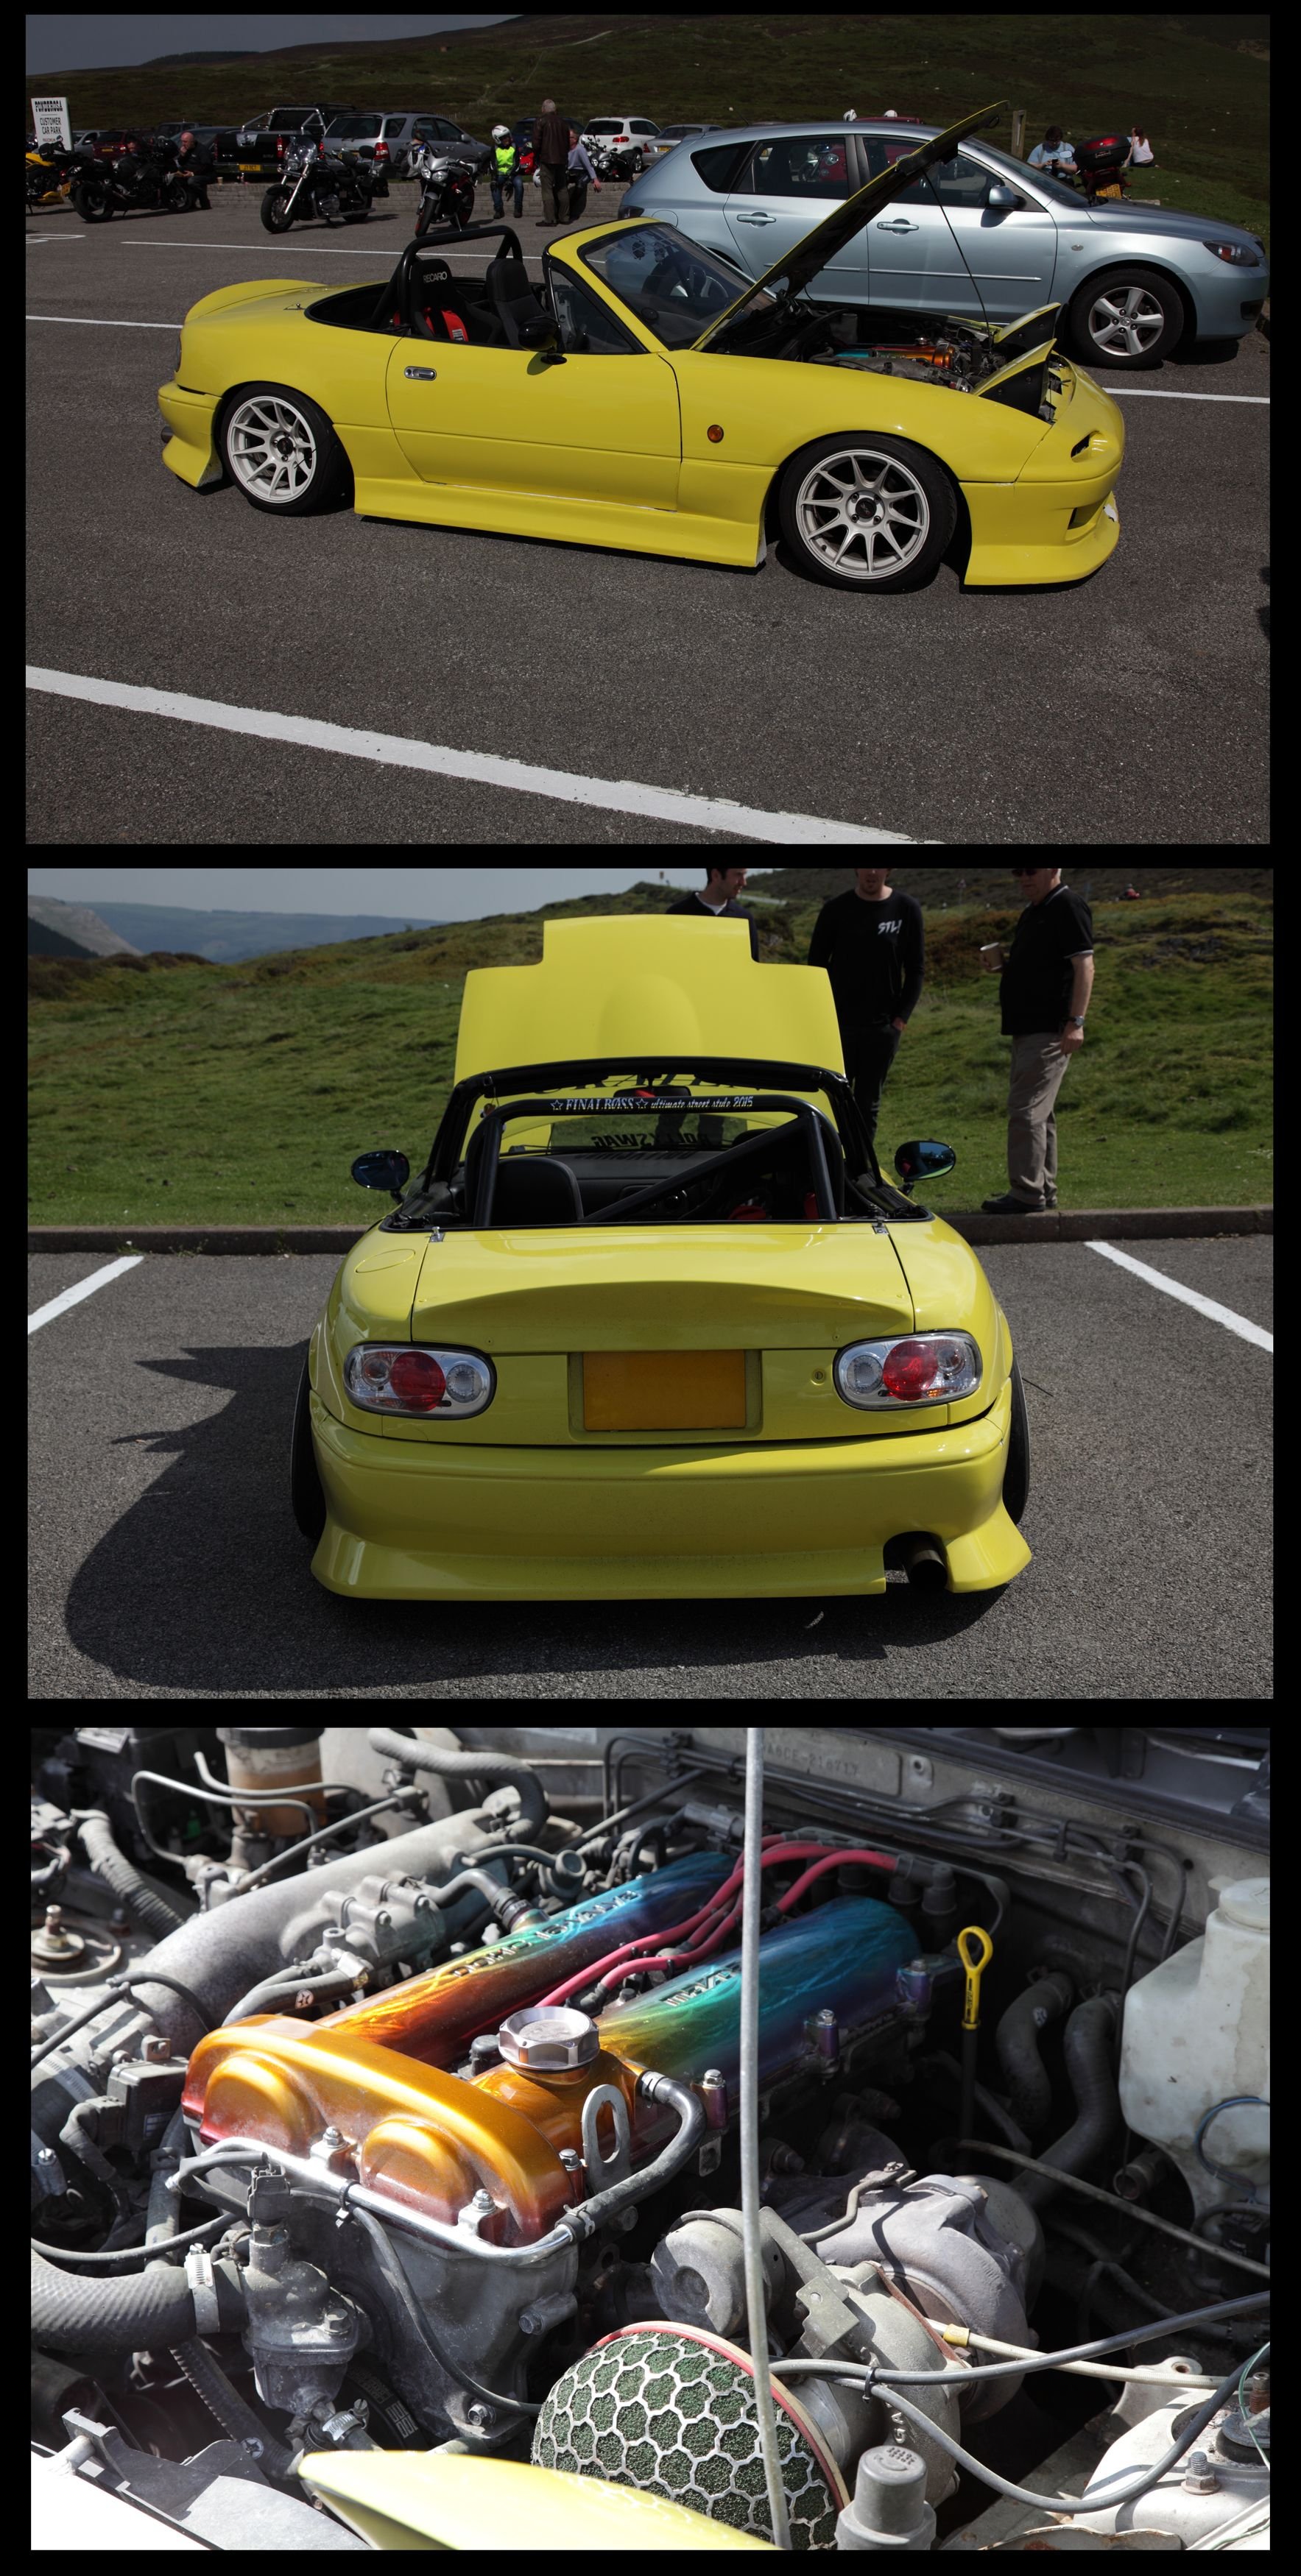 Ponderosa Café North Wales Awesome Mazda Mx5 In The Car Park Today Turbo Charged And Produced 186 Hp On The Dyno Lo Mazda Mx5 Car Parking Turbocharger